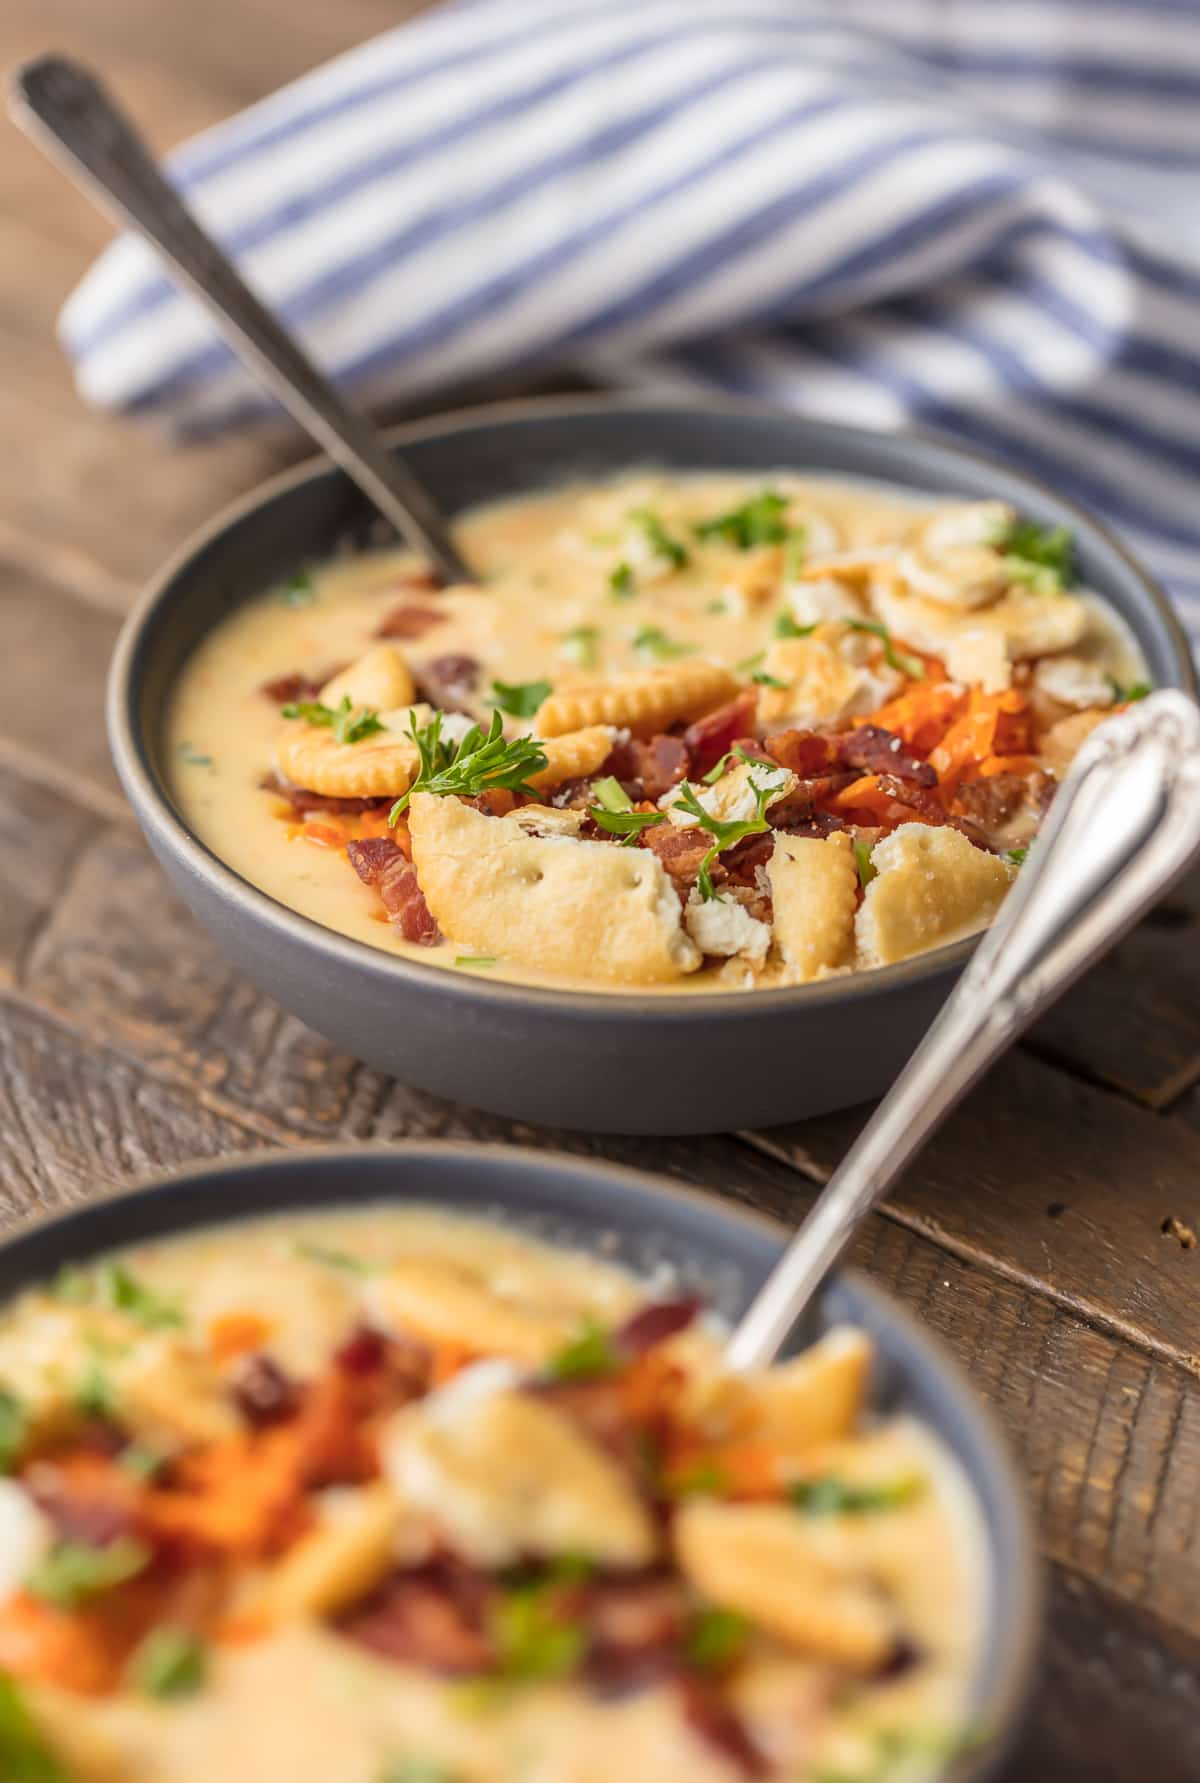 Two bowls of potato cheese soup